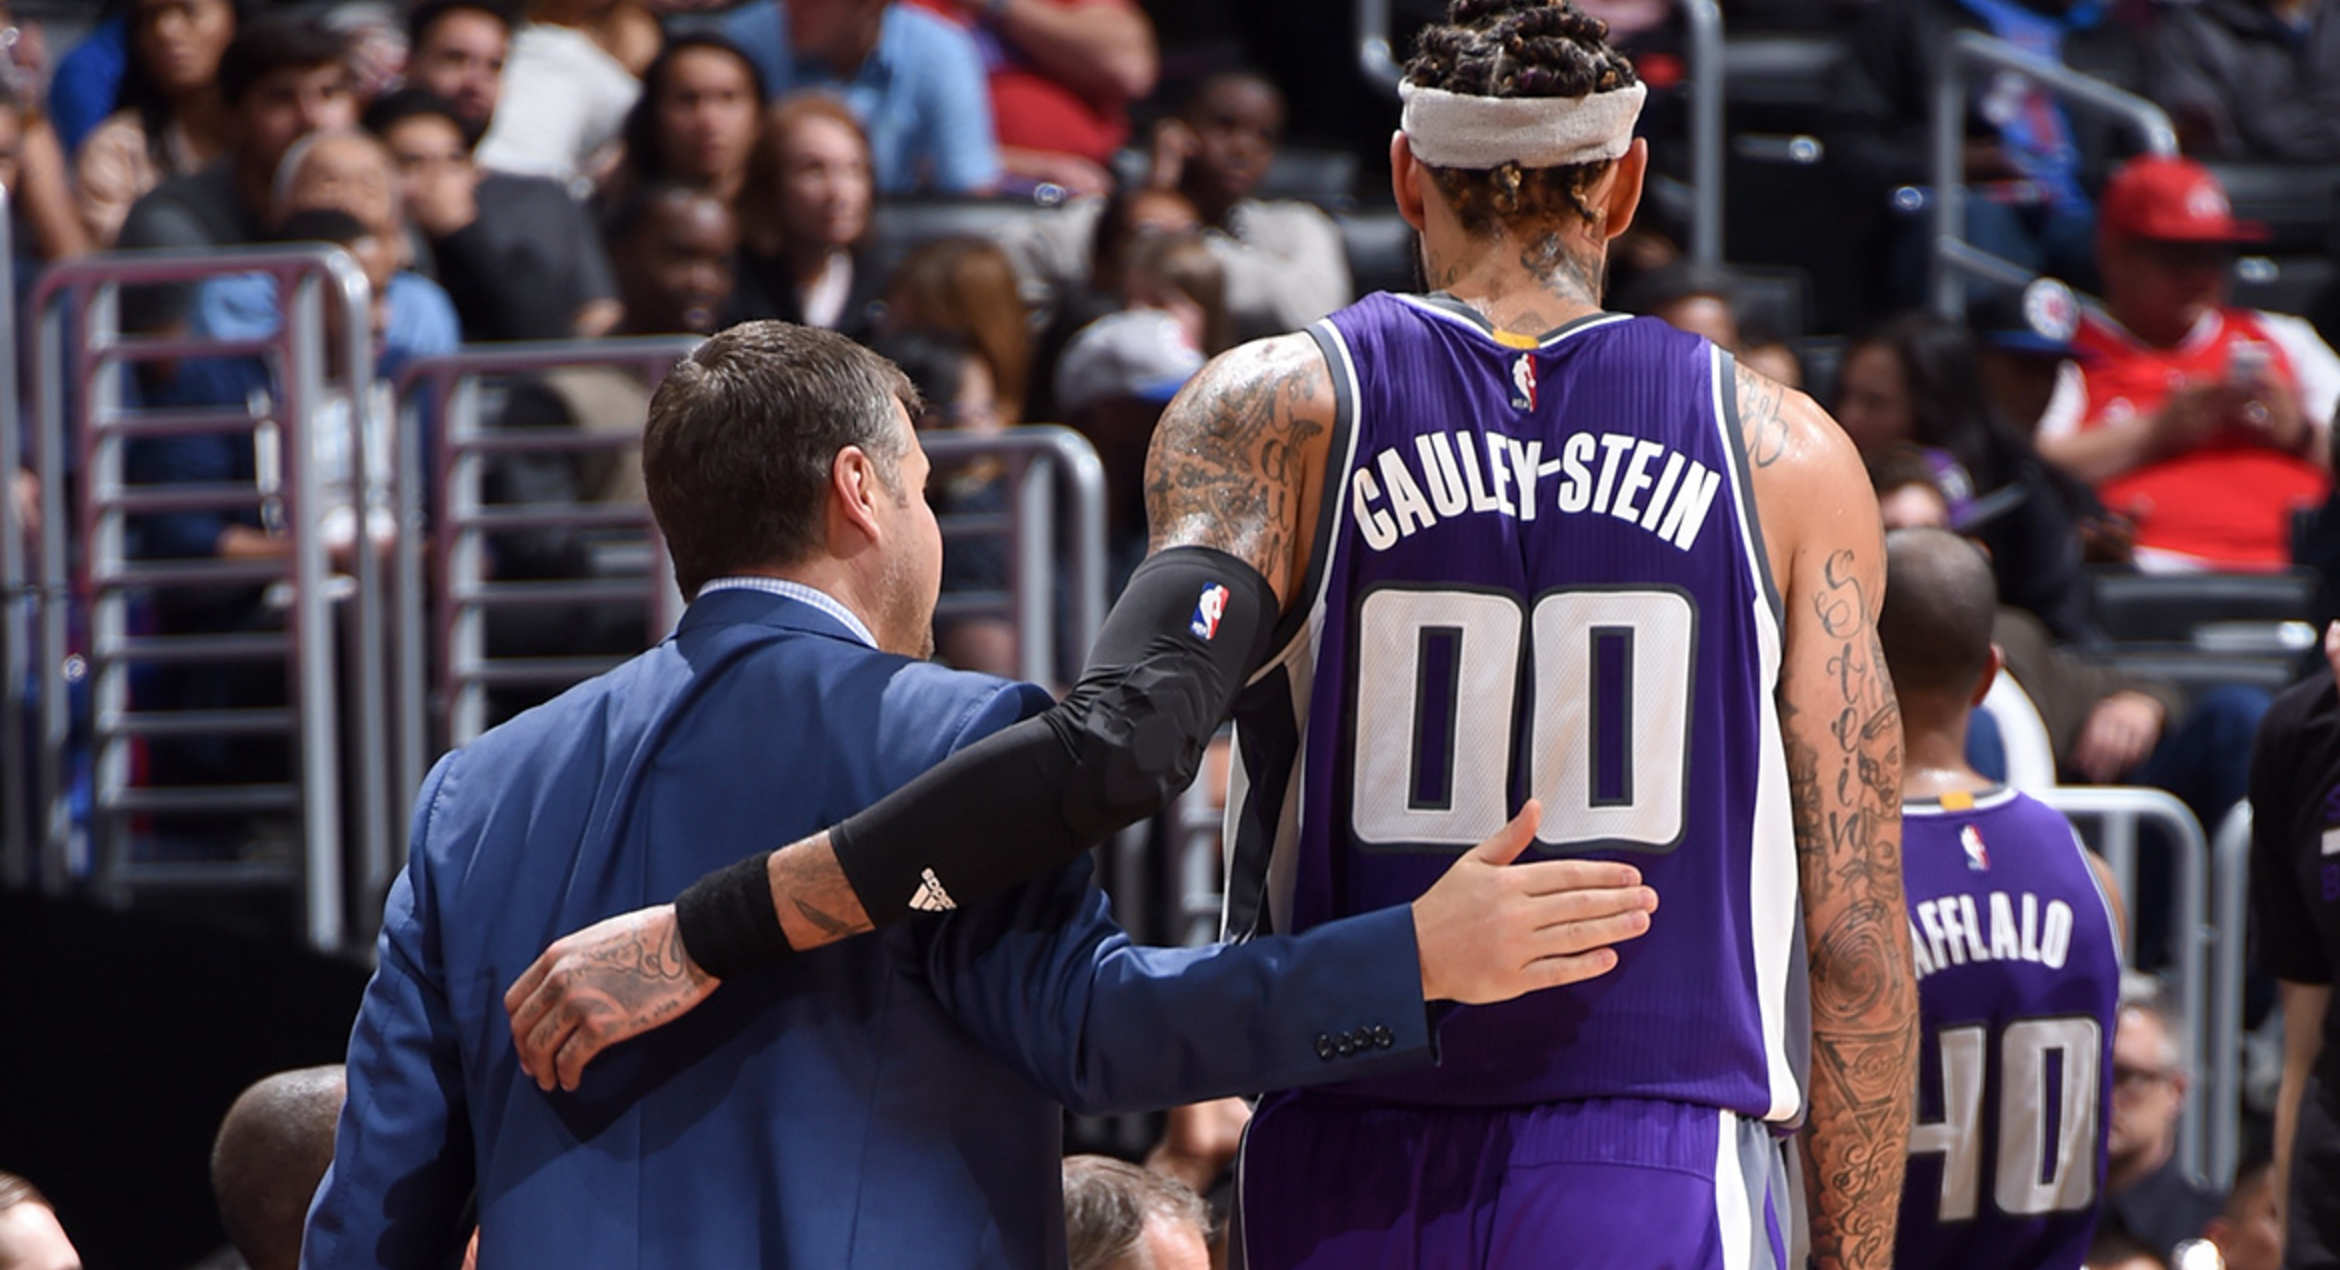 Coach Joerger Shares Expectations for Future